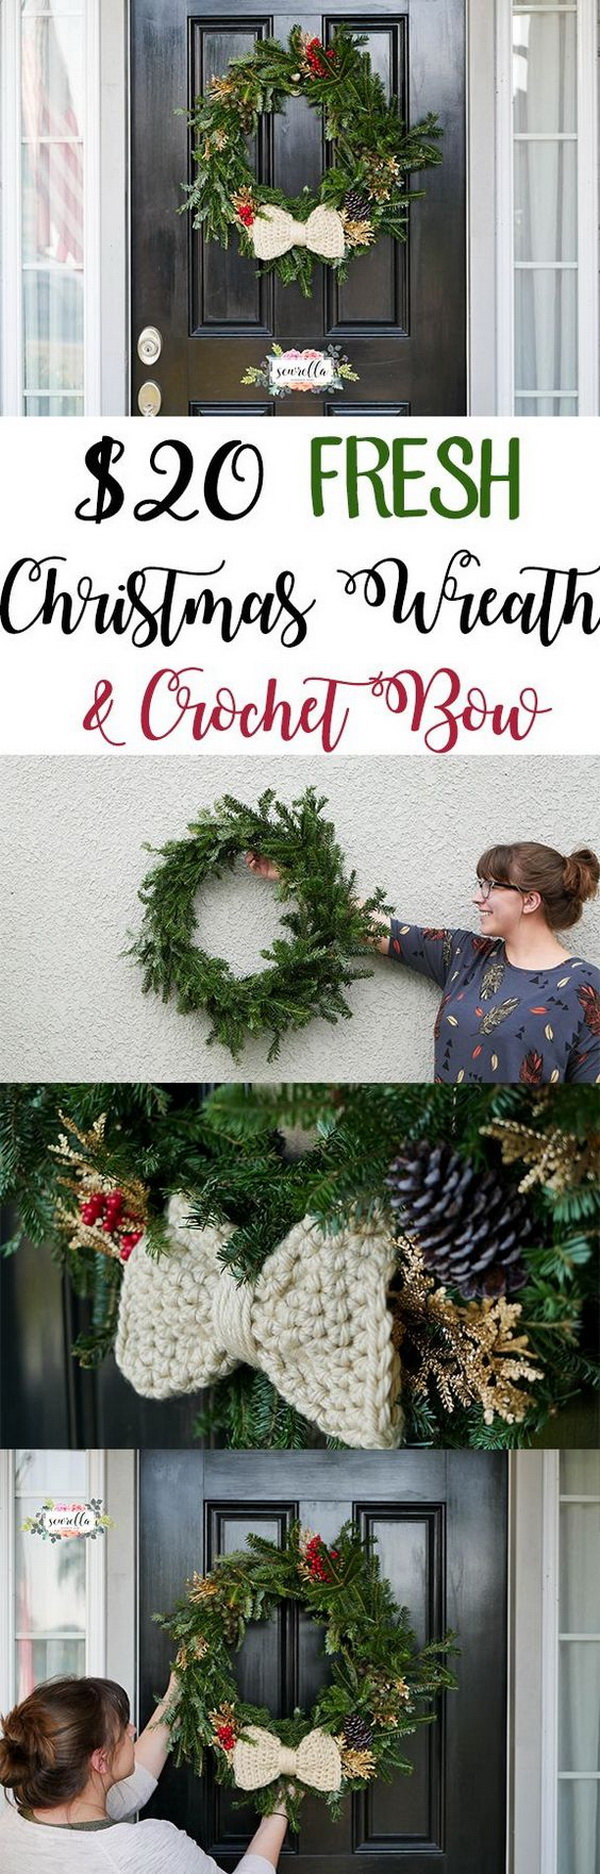 Fresh Christmas Wreath with a Cute Crochet Bow. Make a fresh wreath to adore your door for this holiday season. The crochet bow adds more sweetness! Love it very much!